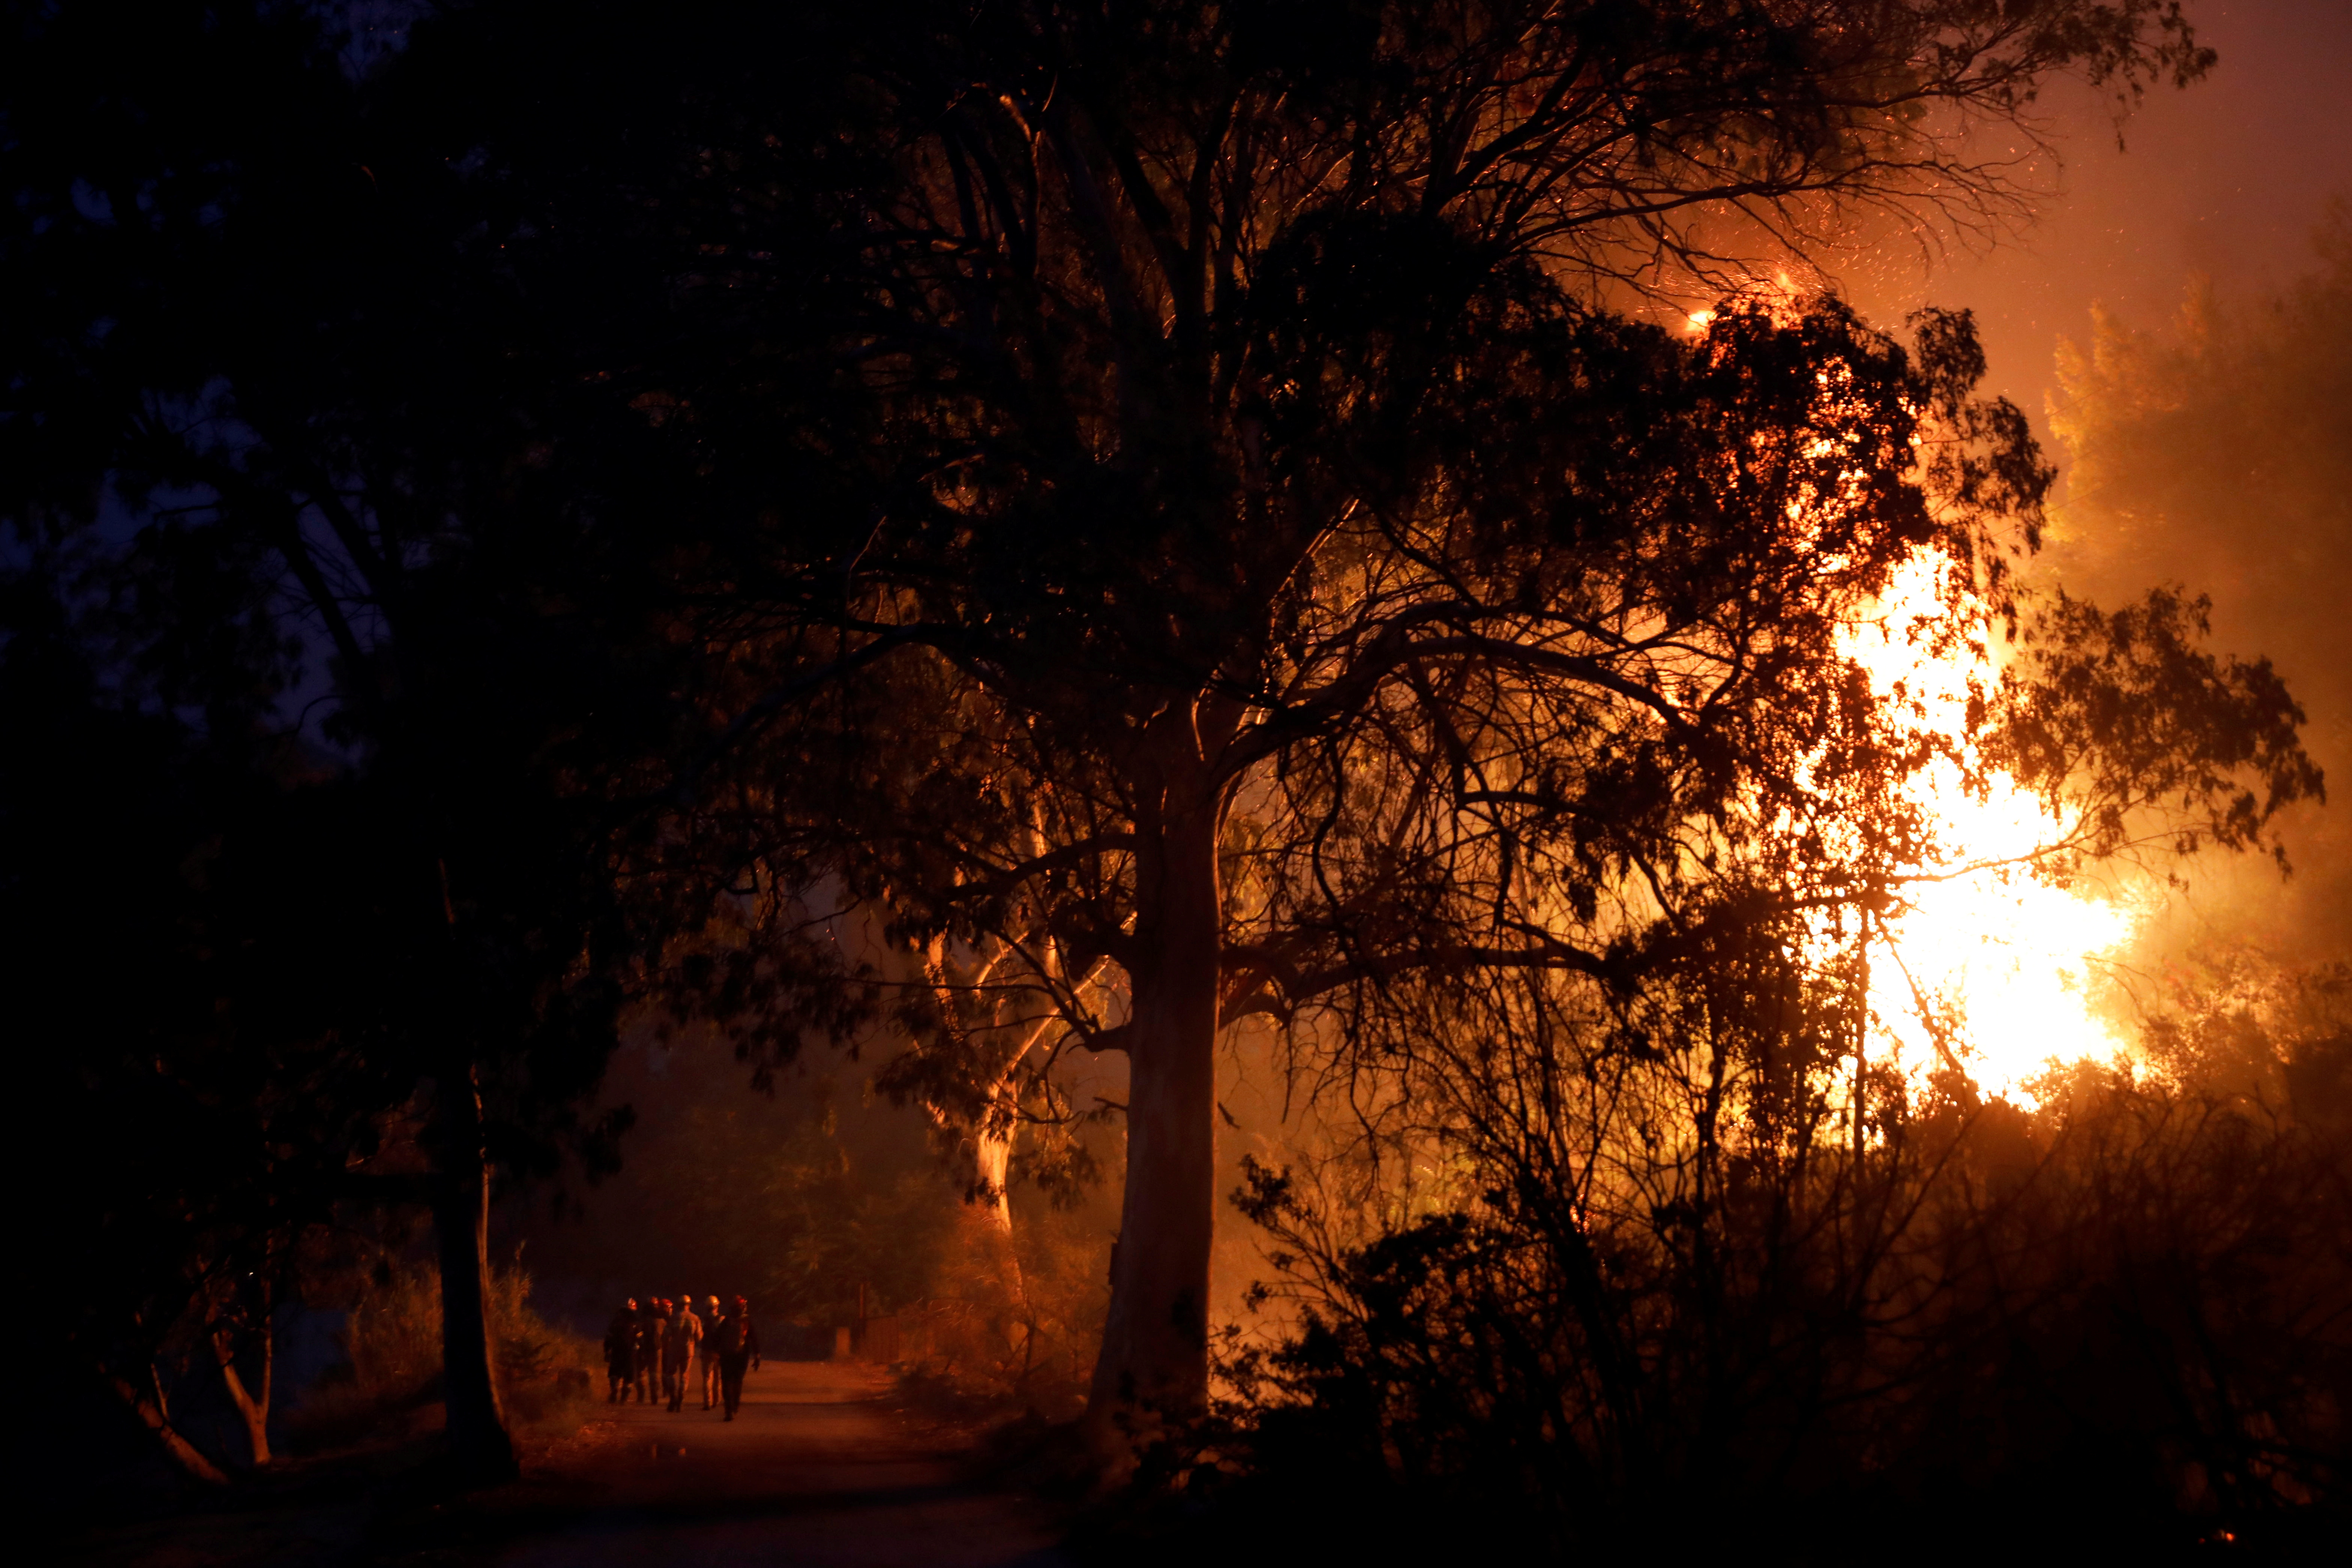 Firefighters walk as flames rise during a wildfire in the village of Rovies, on Evia island, Greece, August 4, 2021. REUTERS/Costas Baltas